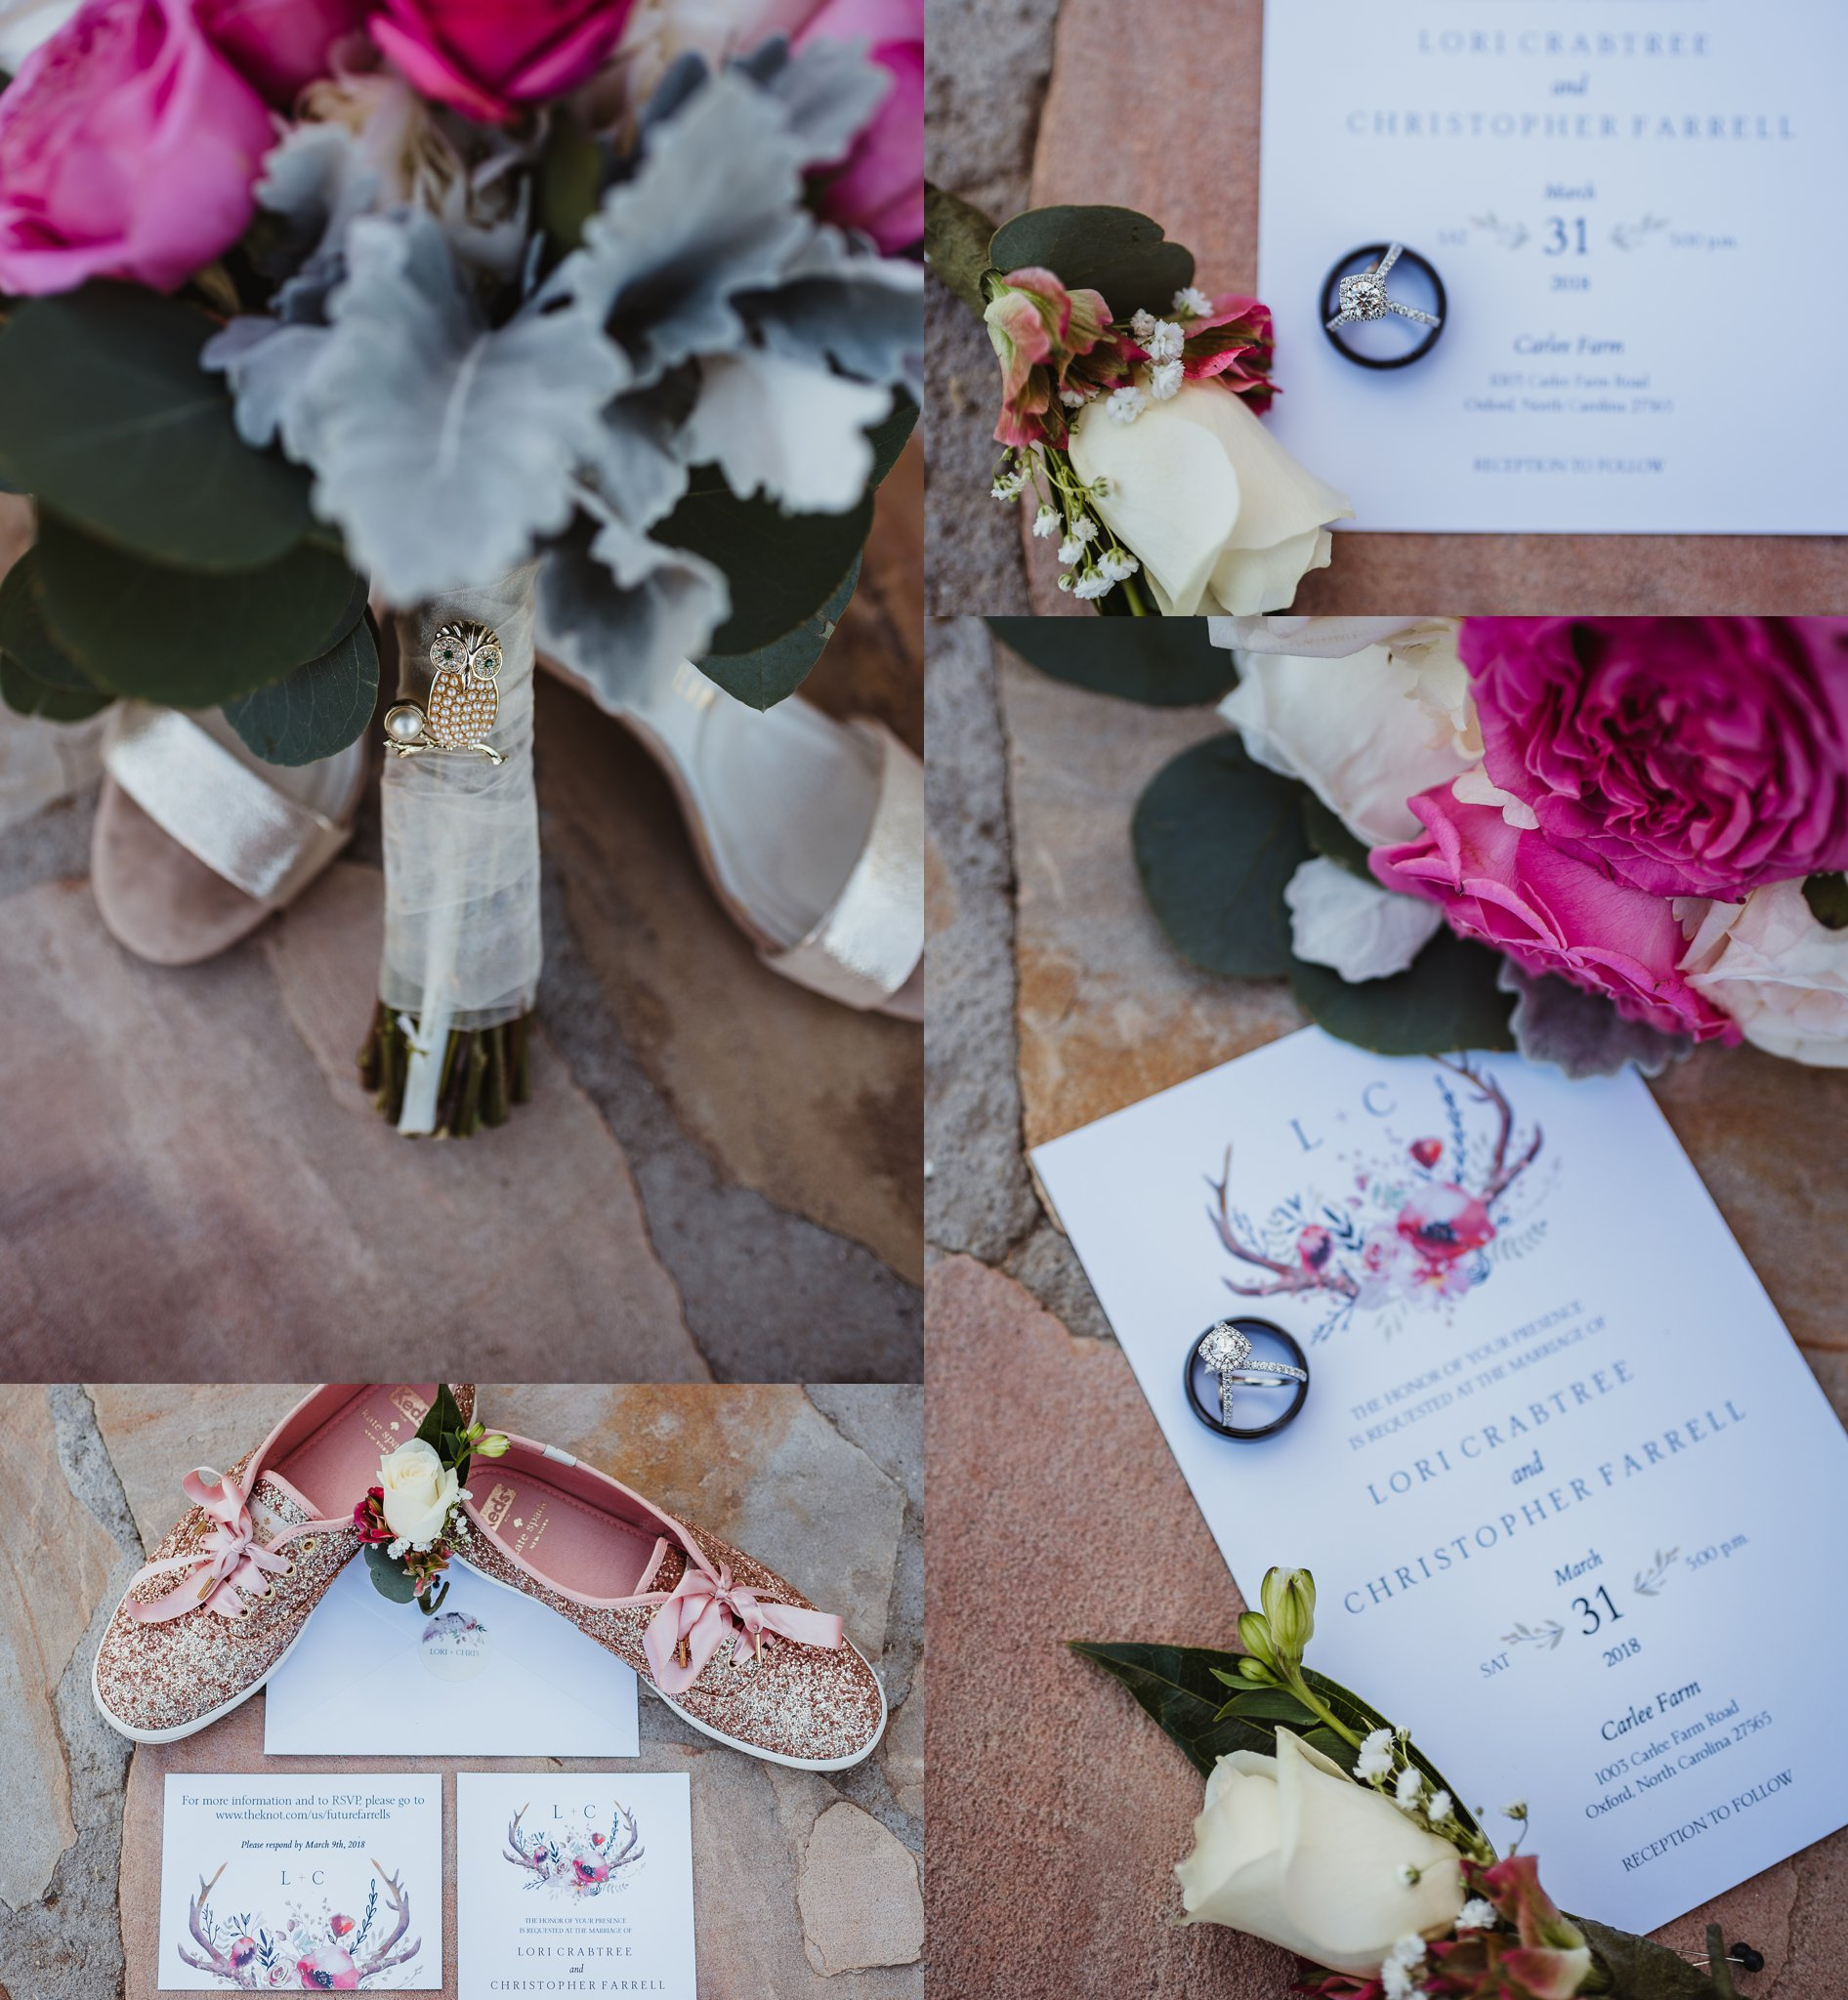 Wedding details, taken by Rose Trail Images at Carlee Farms in Oxford, NC, included watercolor invitations, pink and white flowers, her Grandmother's owl brooch, and bright pink sparkly tennis shoes!